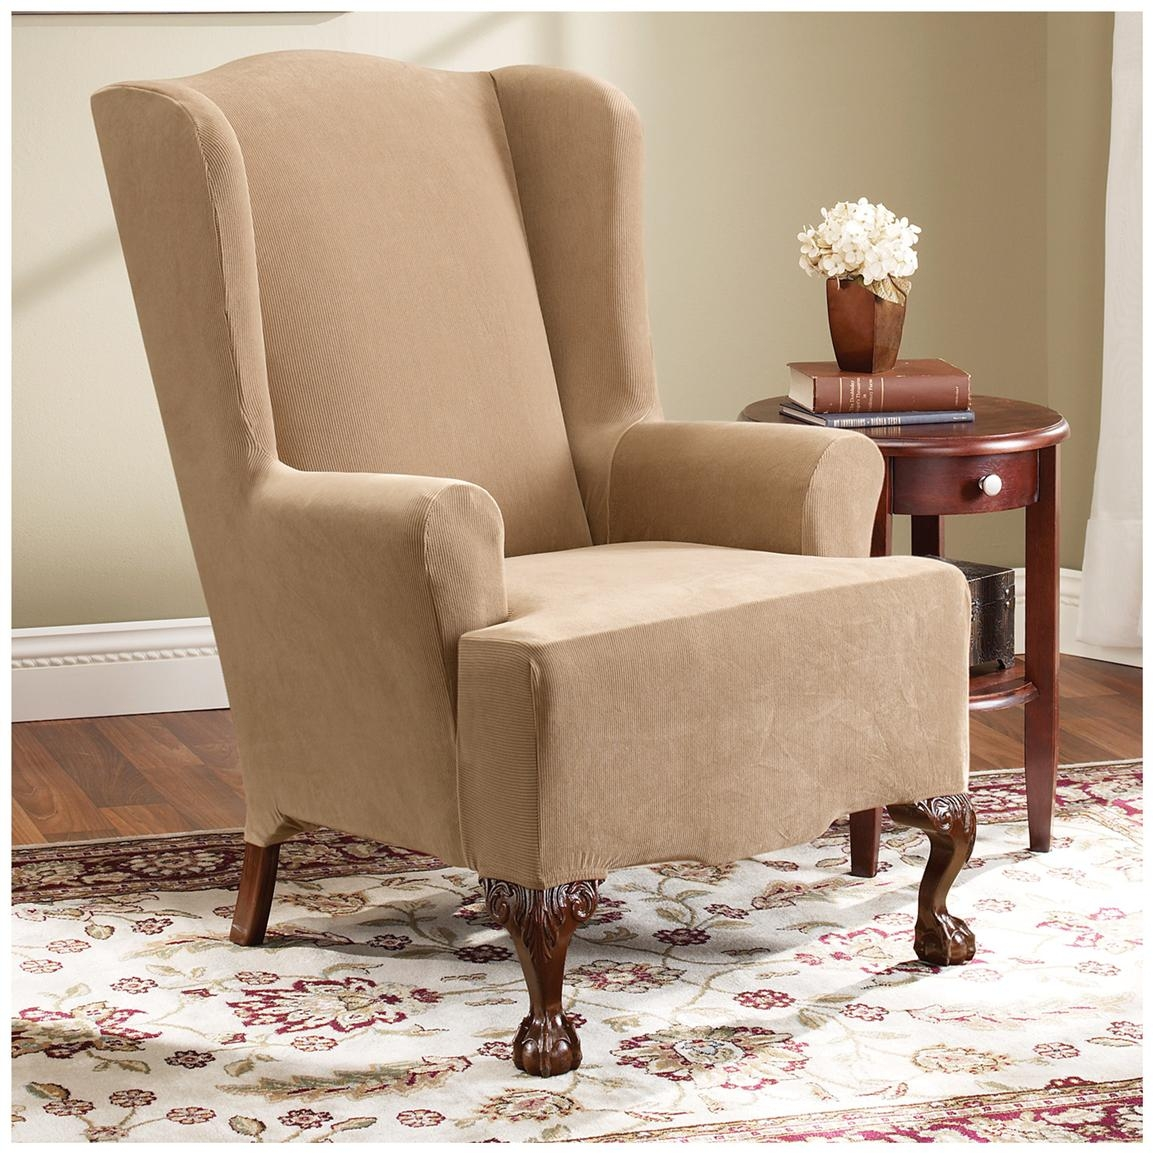 Slipcovers For Wing Chairs Recliners Home Chair Designs With Regard To Slipcovers For Chairs And Sofas (Image 10 of 15)